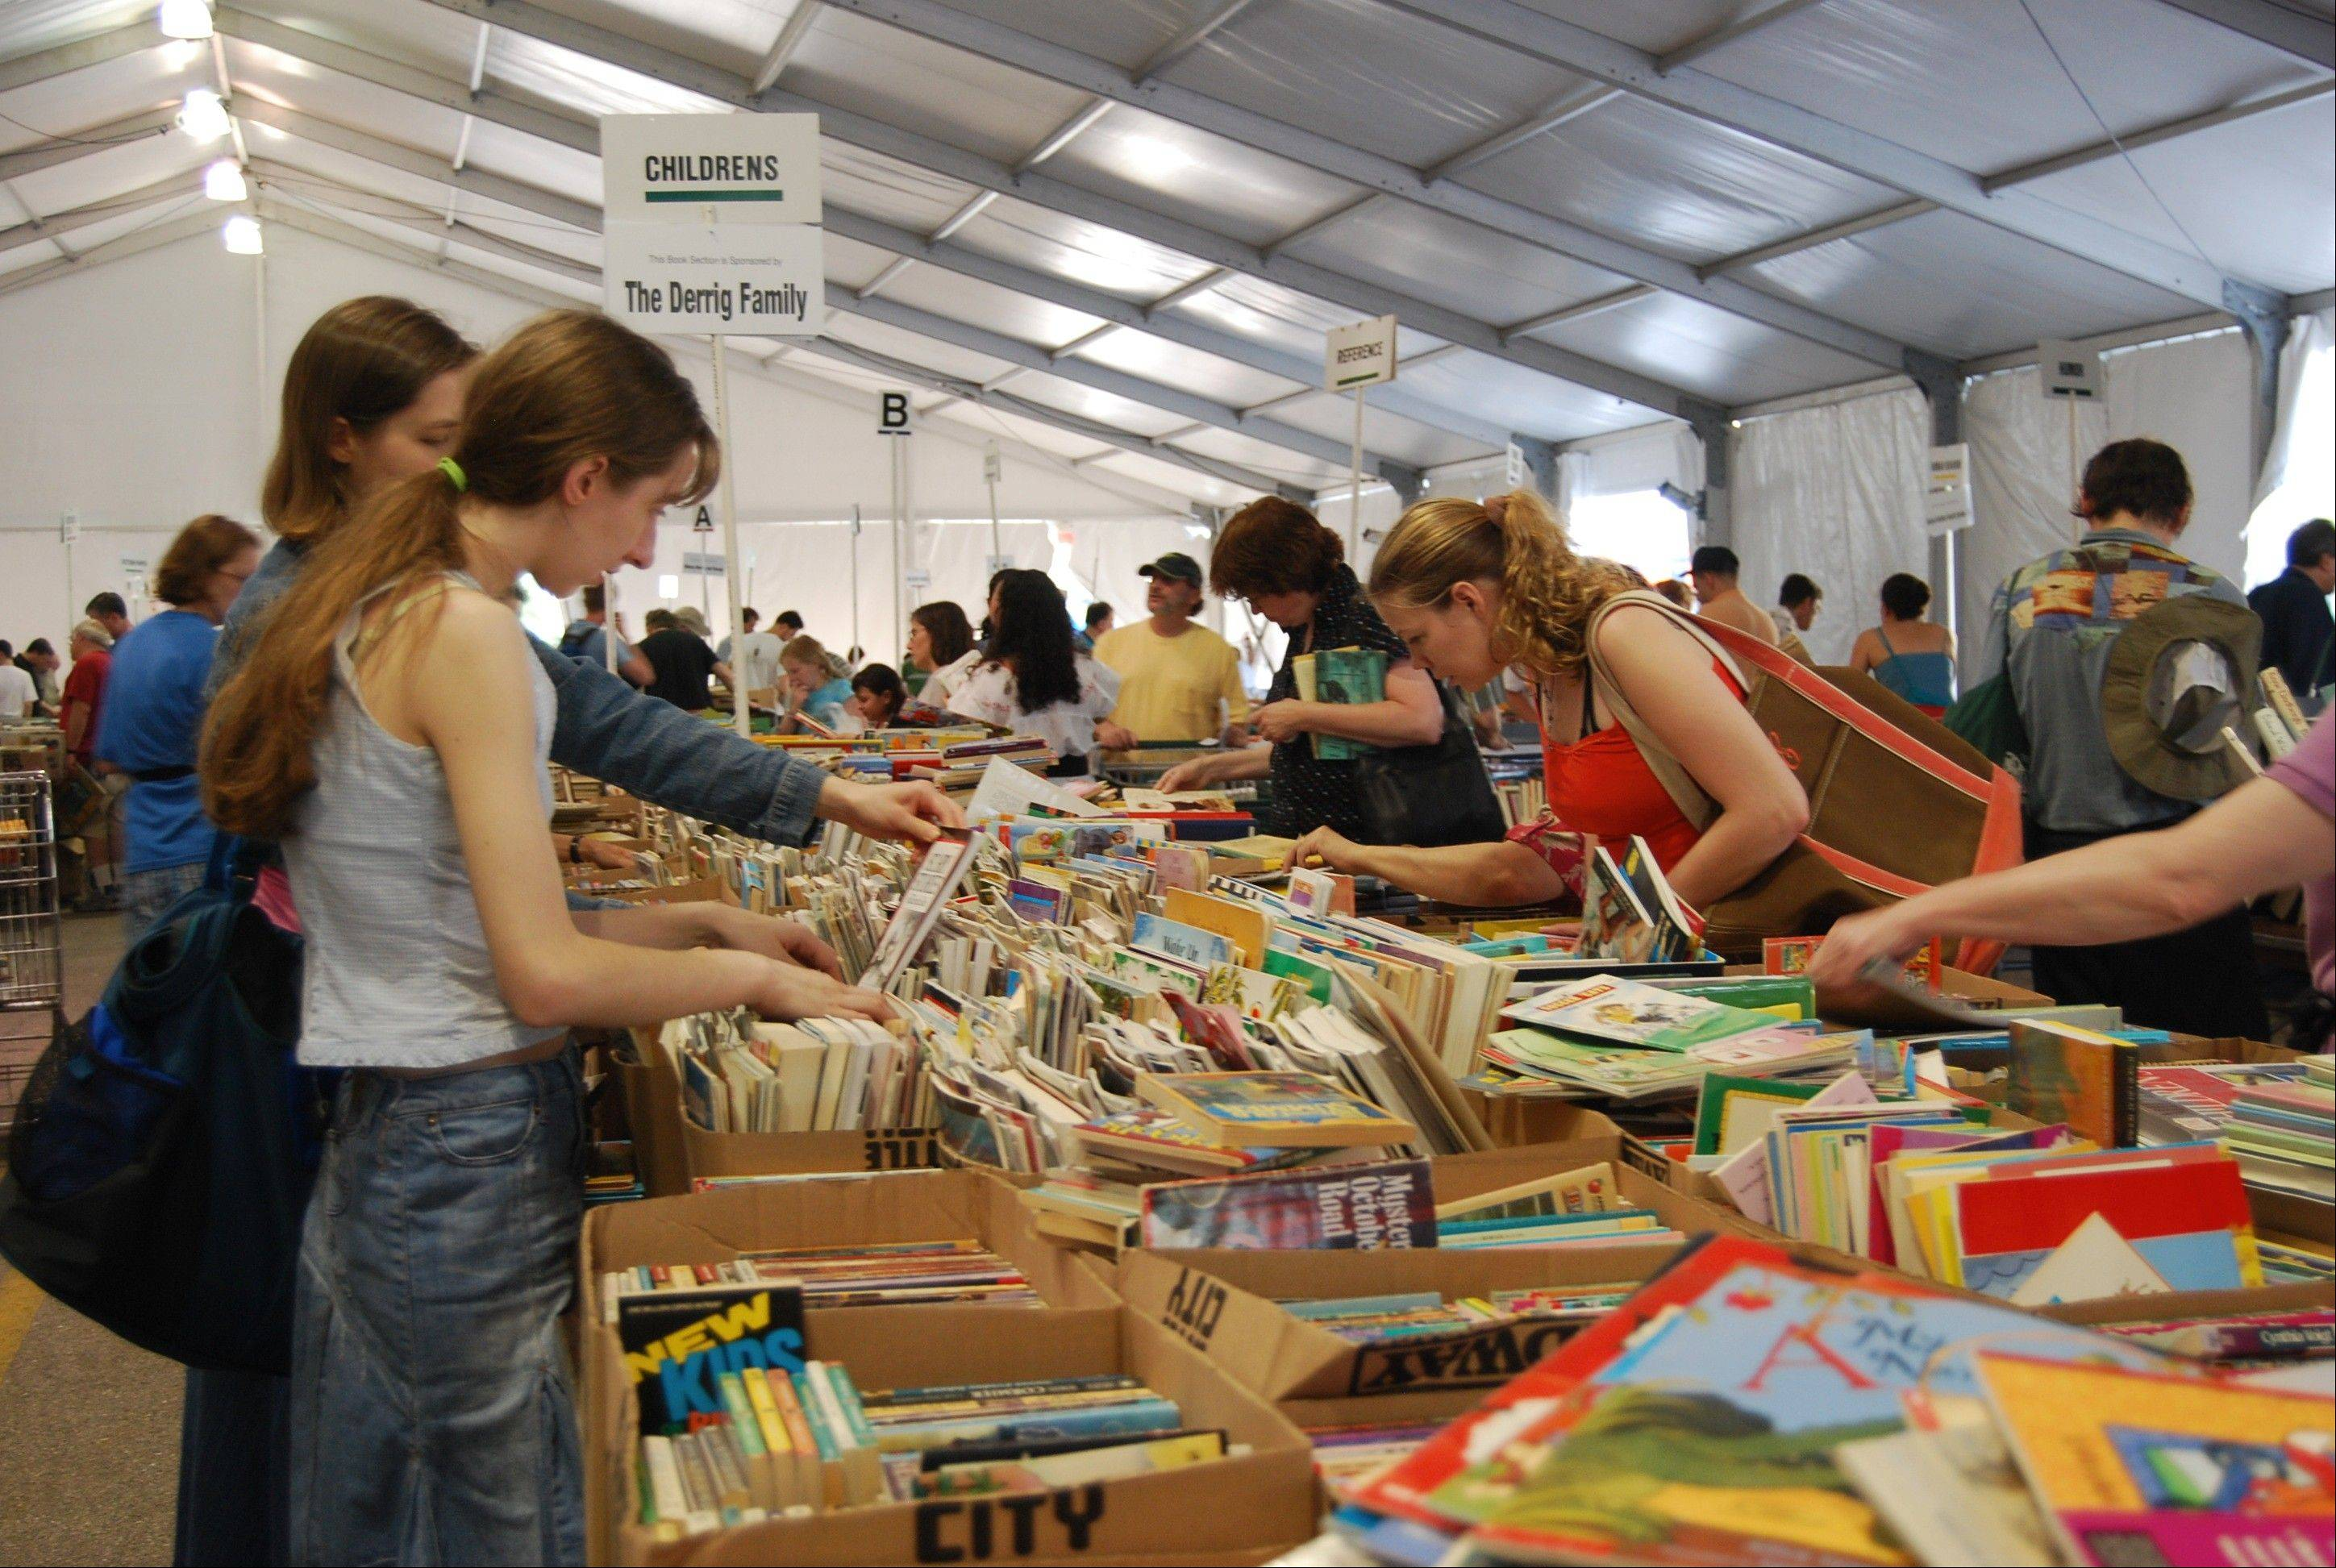 Patrons browse thousands of books at last year�s Little City Book Fair, which is being relocated from Skokie to Harper College in Palatine.